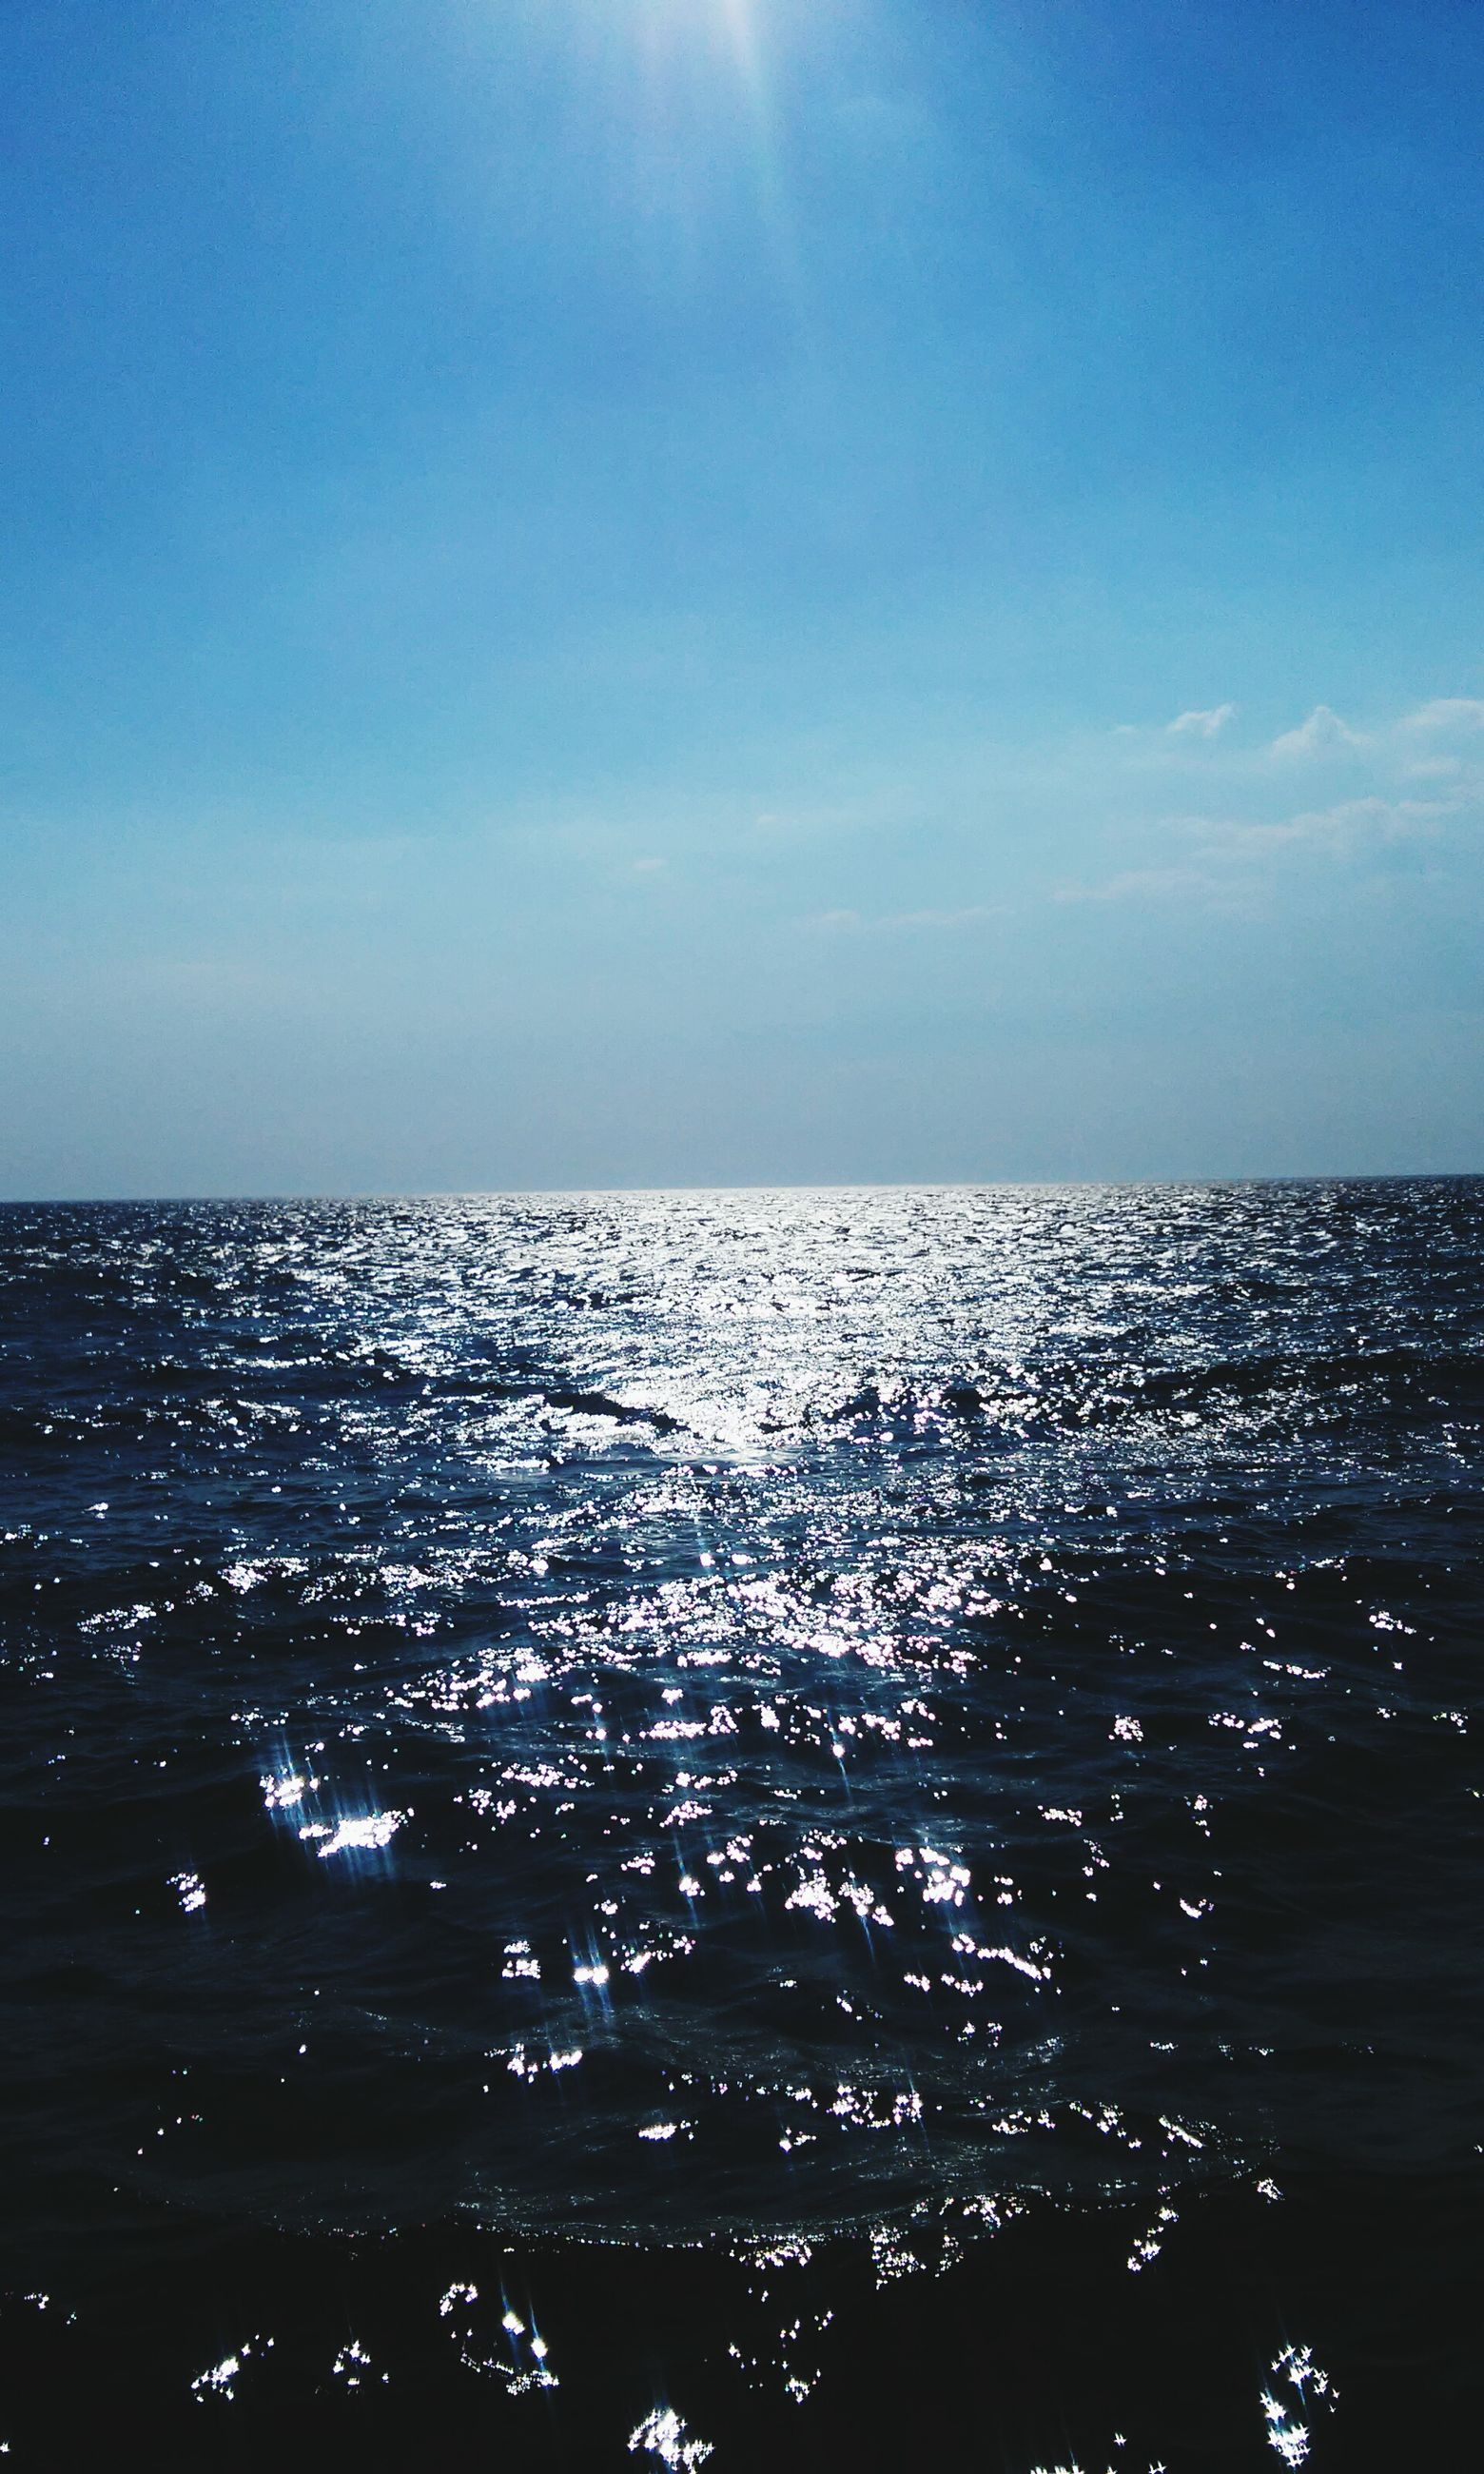 water, sea, horizon over water, scenics, beauty in nature, waterfront, tranquil scene, tranquility, blue, sky, nature, rippled, idyllic, seascape, outdoors, clear sky, reflection, no people, sunlight, day